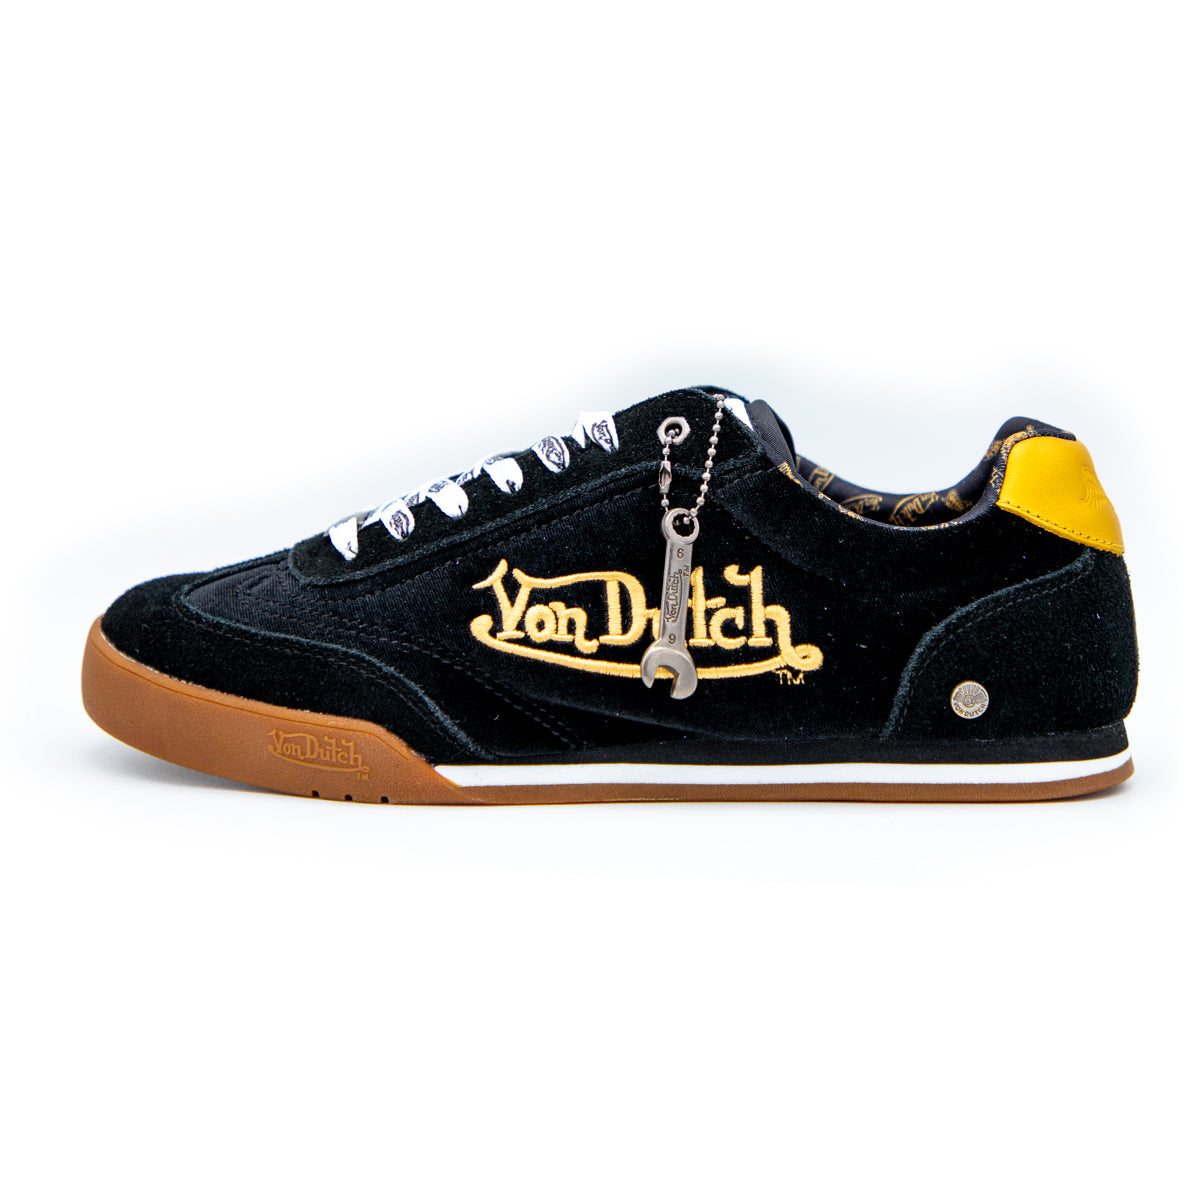 Men's Velvet Vanderdutch Sneaker Black & Gold